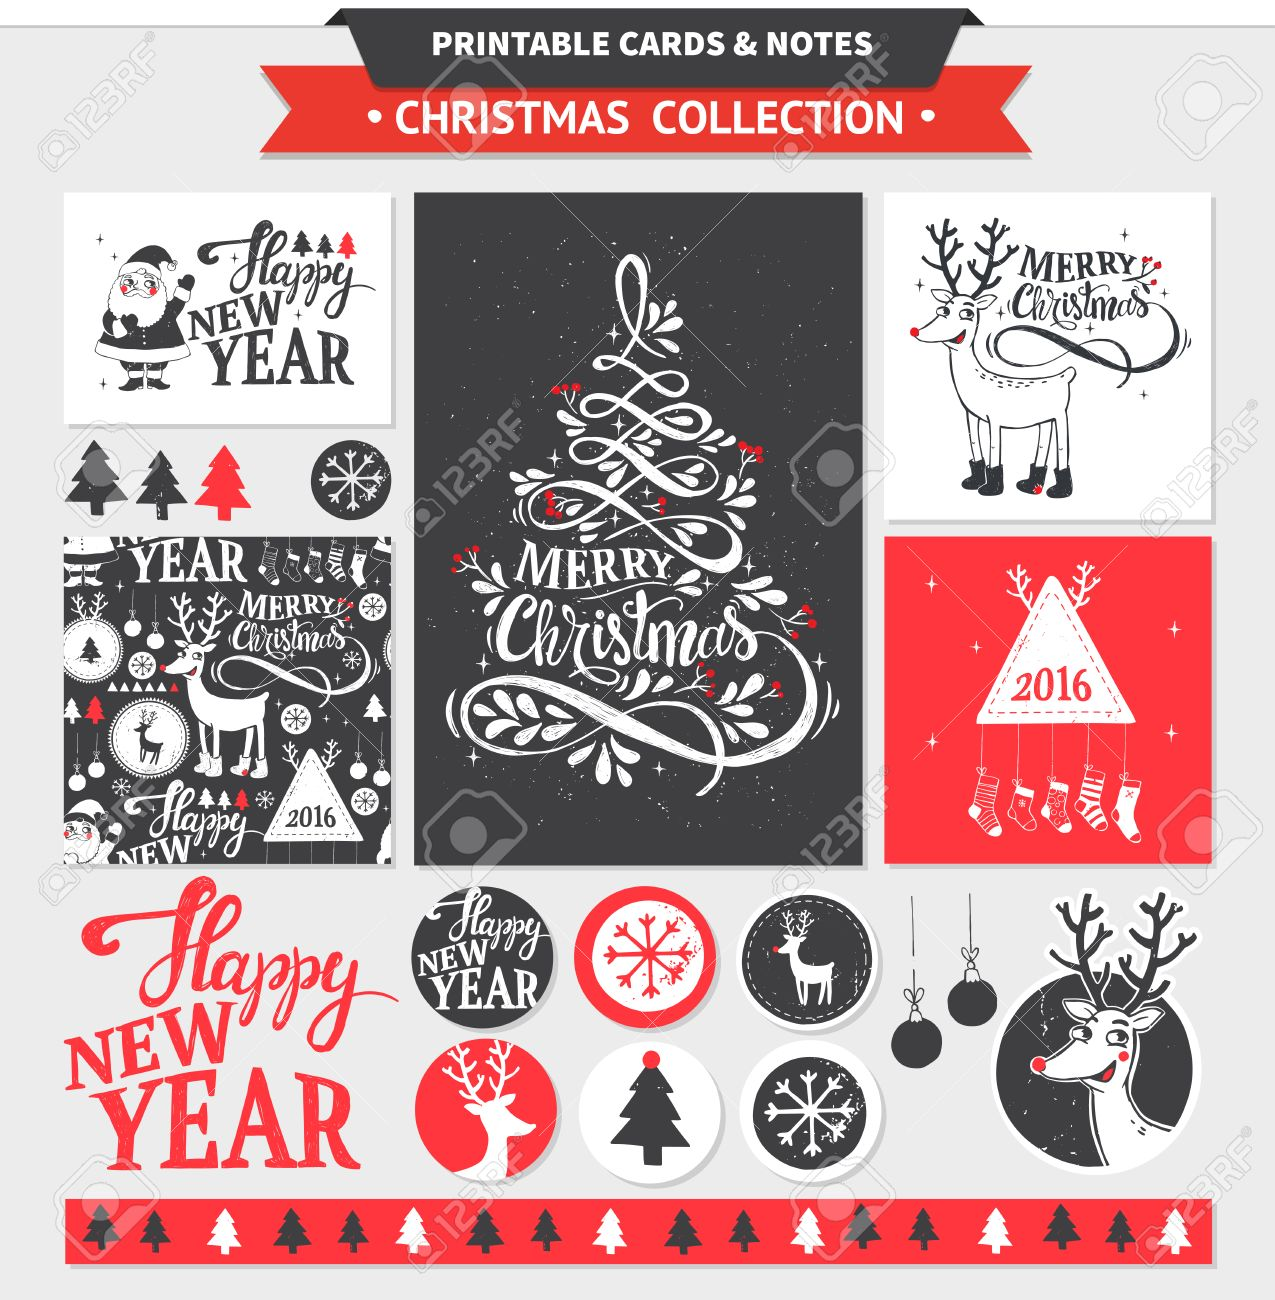 Hipster New Year and Merry Christmas set. Vector printable cards, stickers and banners with dear, santa, tree, snowflake, etc. - 48599620